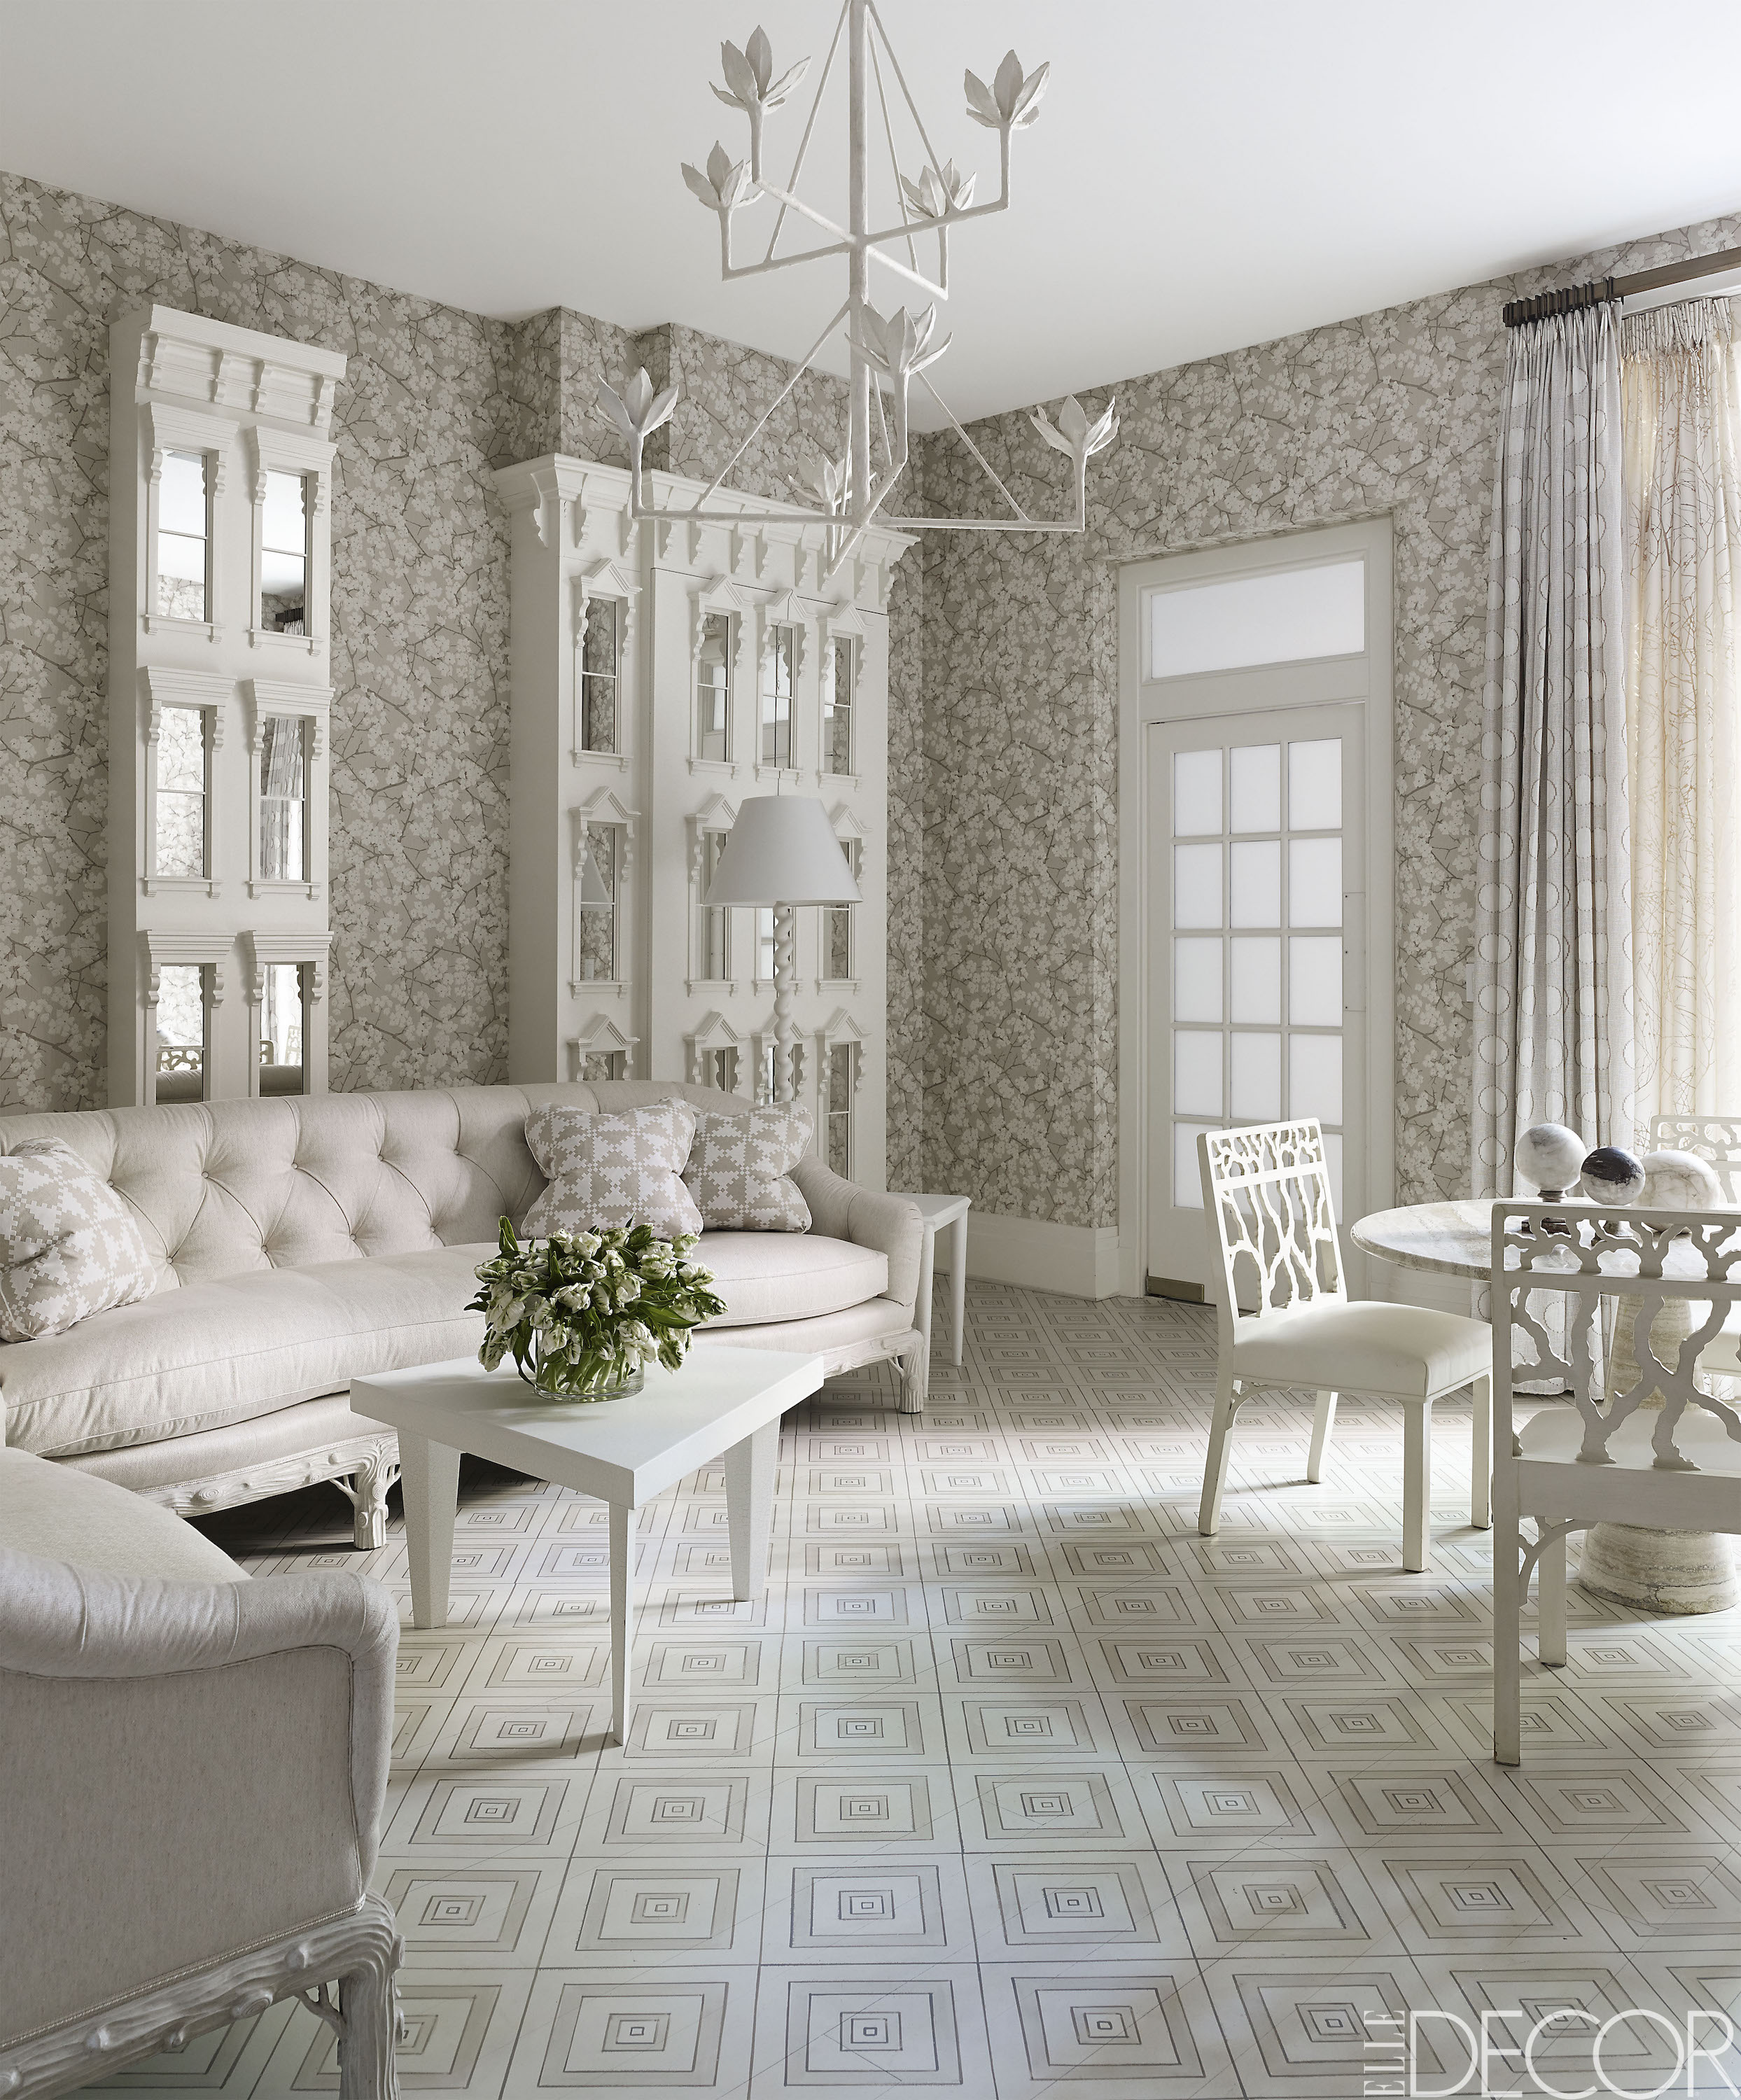 20 white living room furniture ideas - white chairs and couches MXKOTYW